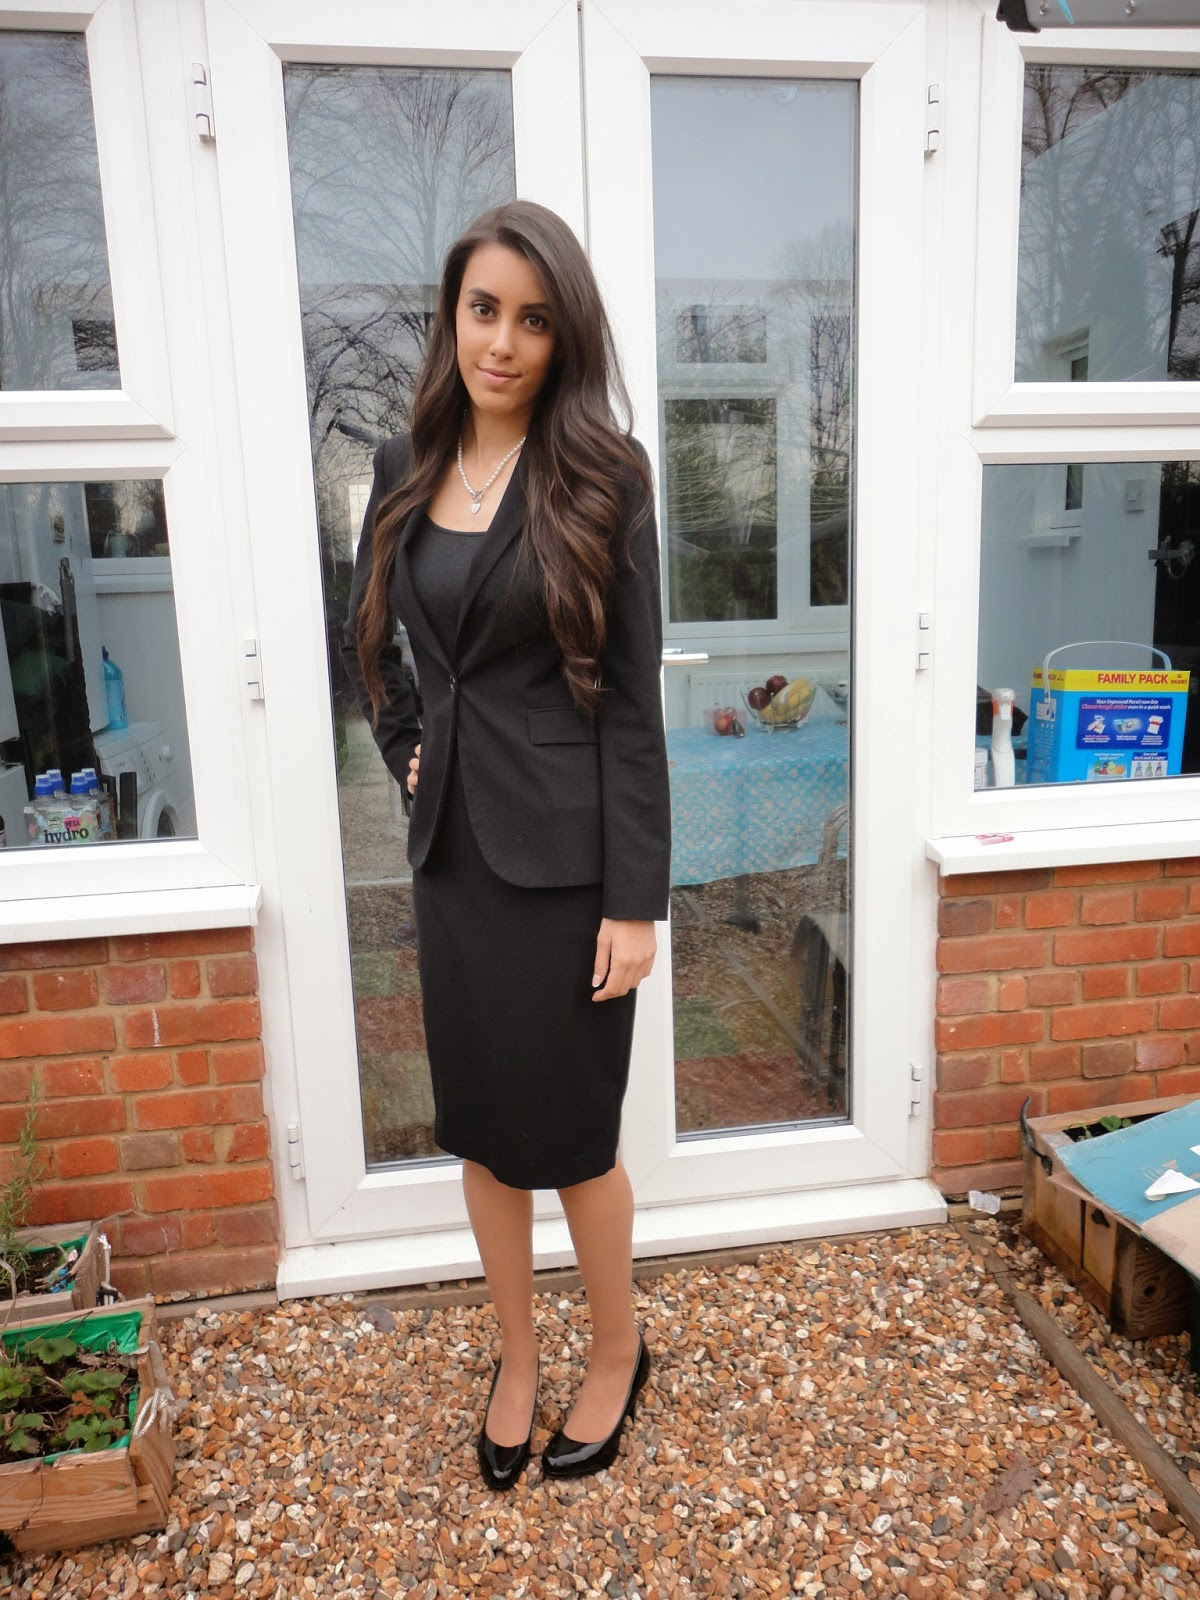 little gem how to dress for an interview it is a good idea to invest in a smart blazer a black vest and either a midi skirt or a pair of black skinny trousers